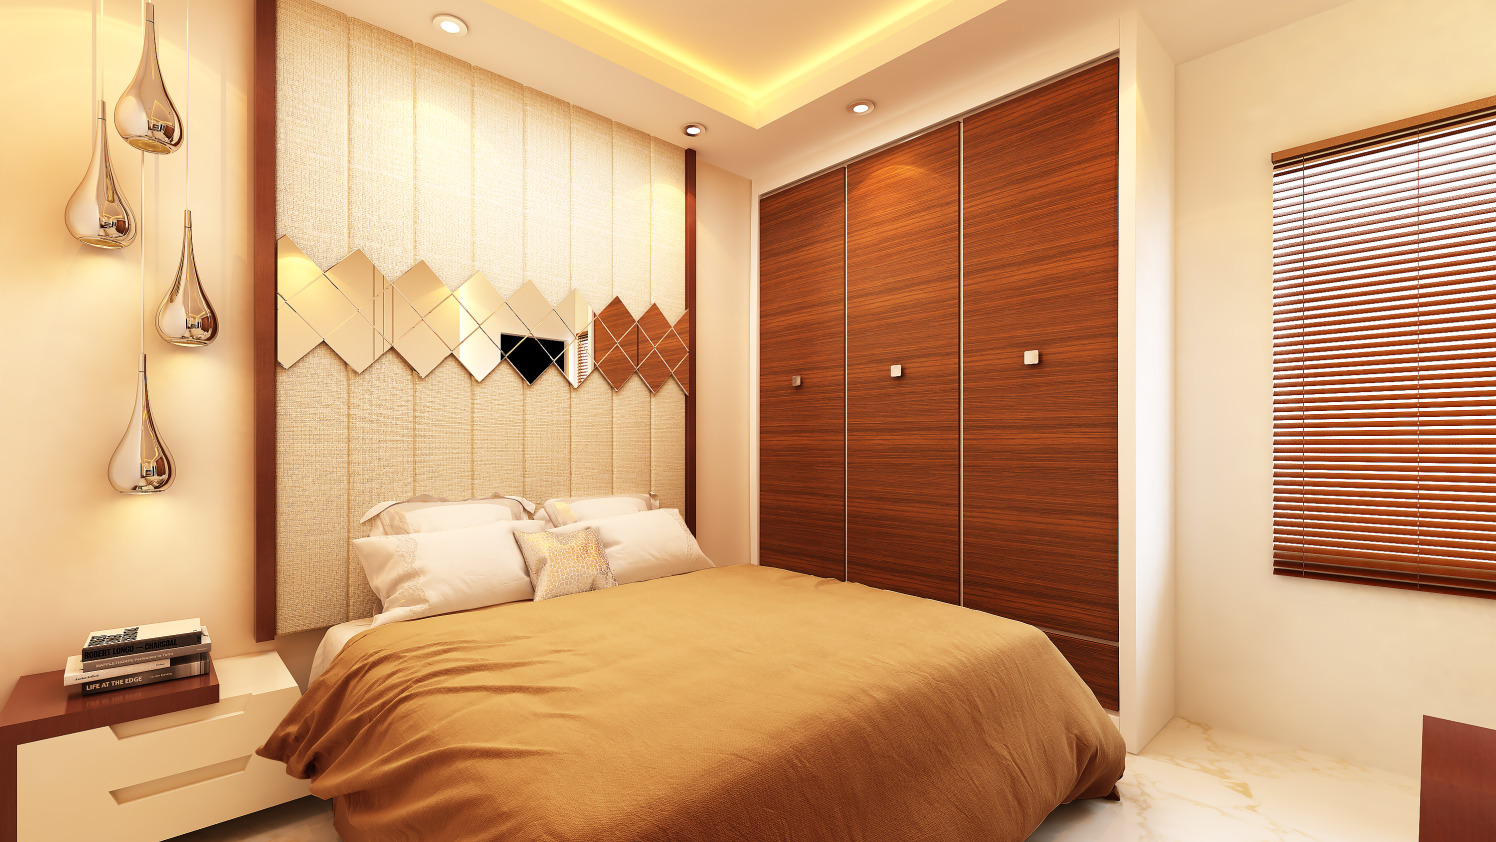 Bedroom with wardrobe false ceiling and wall decor by Ram PJ Bedroom Modern | Interior Design Photos & Ideas